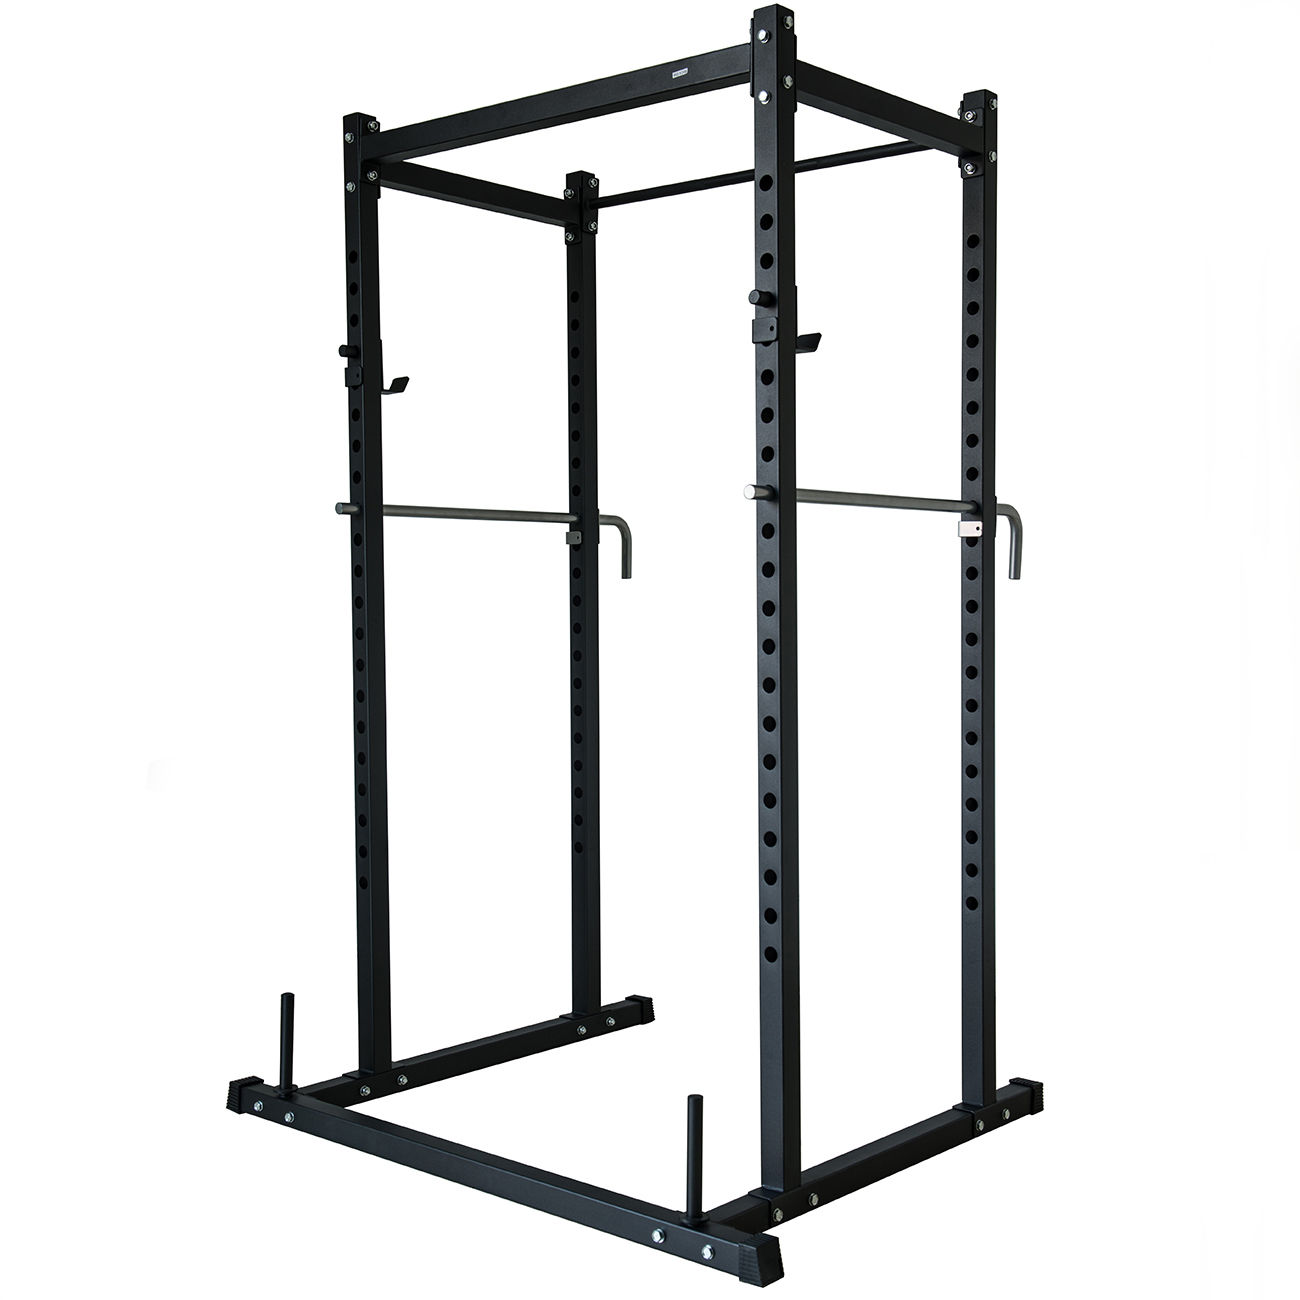 Deadlift Bench Racks Stand Power Rack Squat Lift Cage Cross Fit Work Out Wear